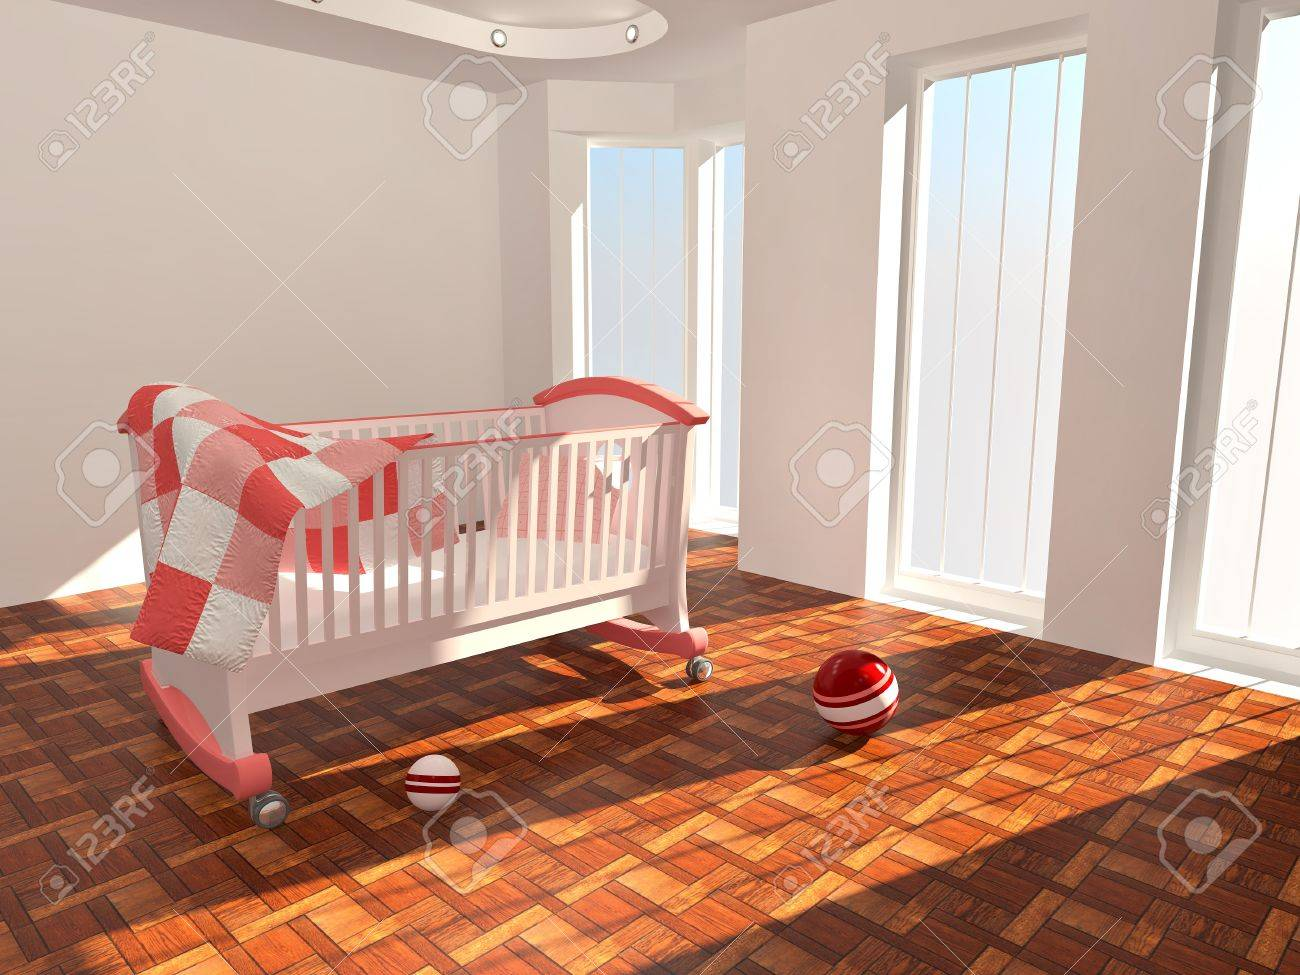 Children's bed in an empty room, lit by sunlight. 3d Stock Photo - 8247433